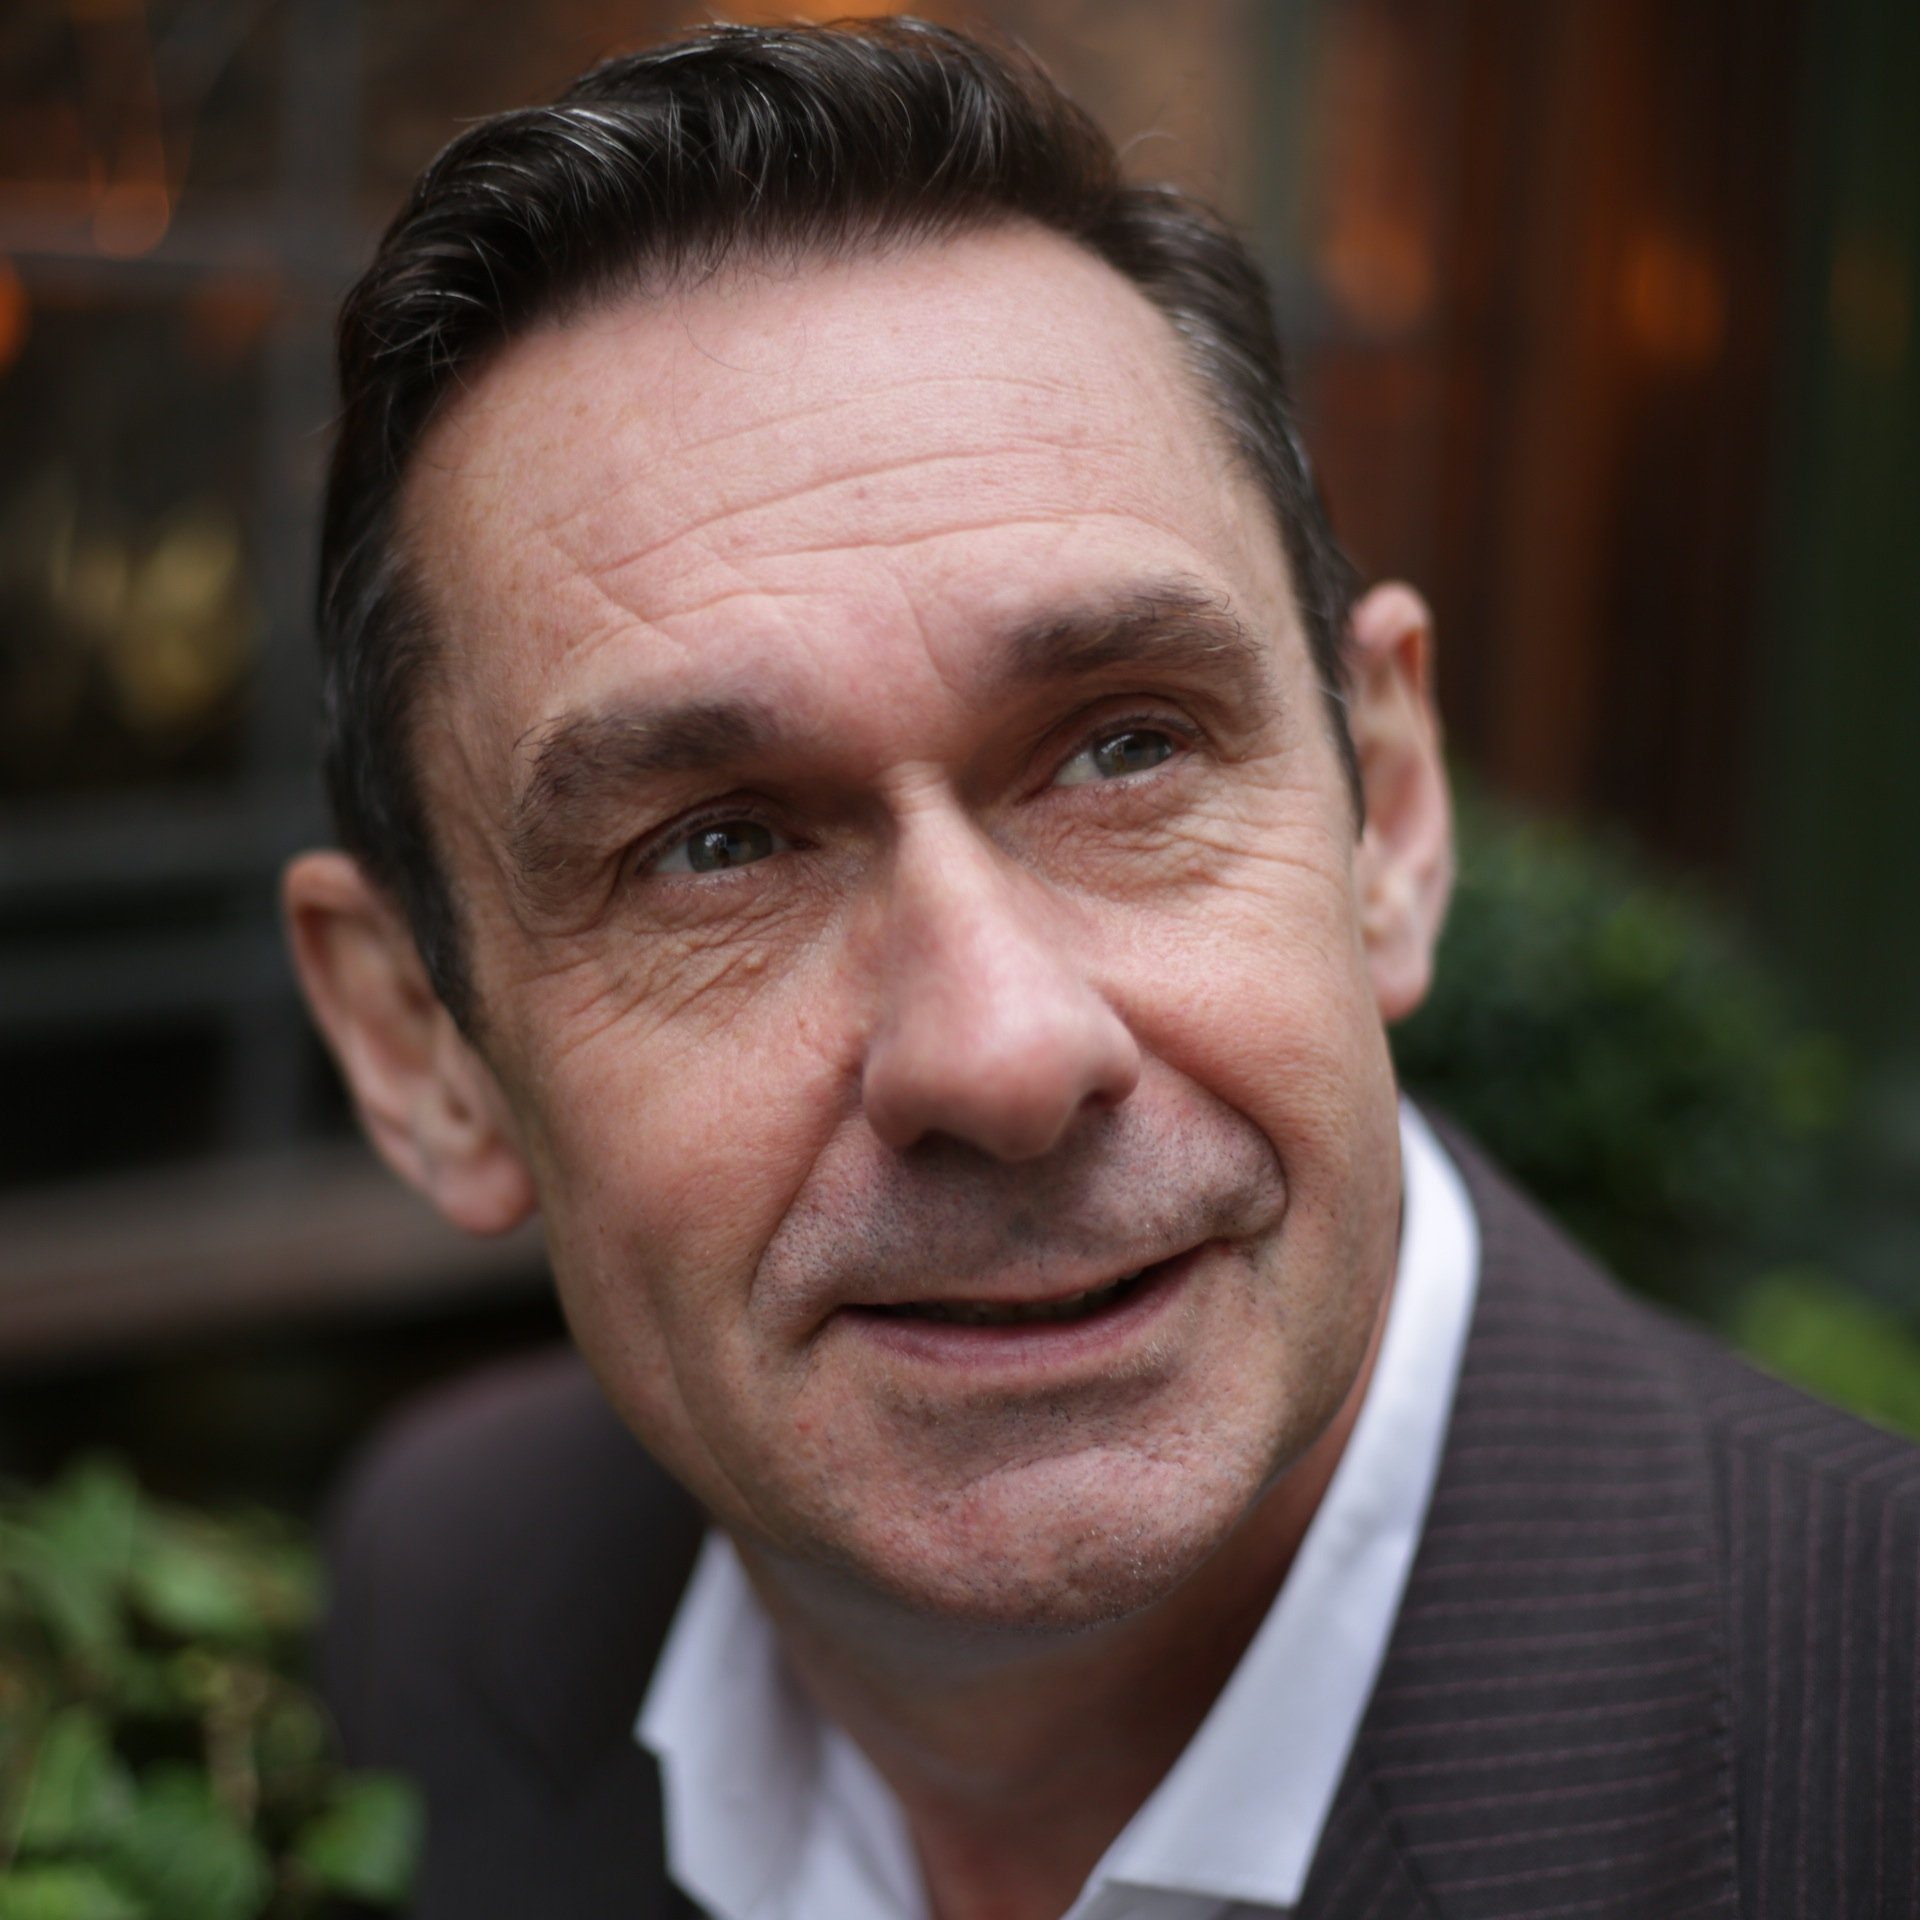 paulmasonnews